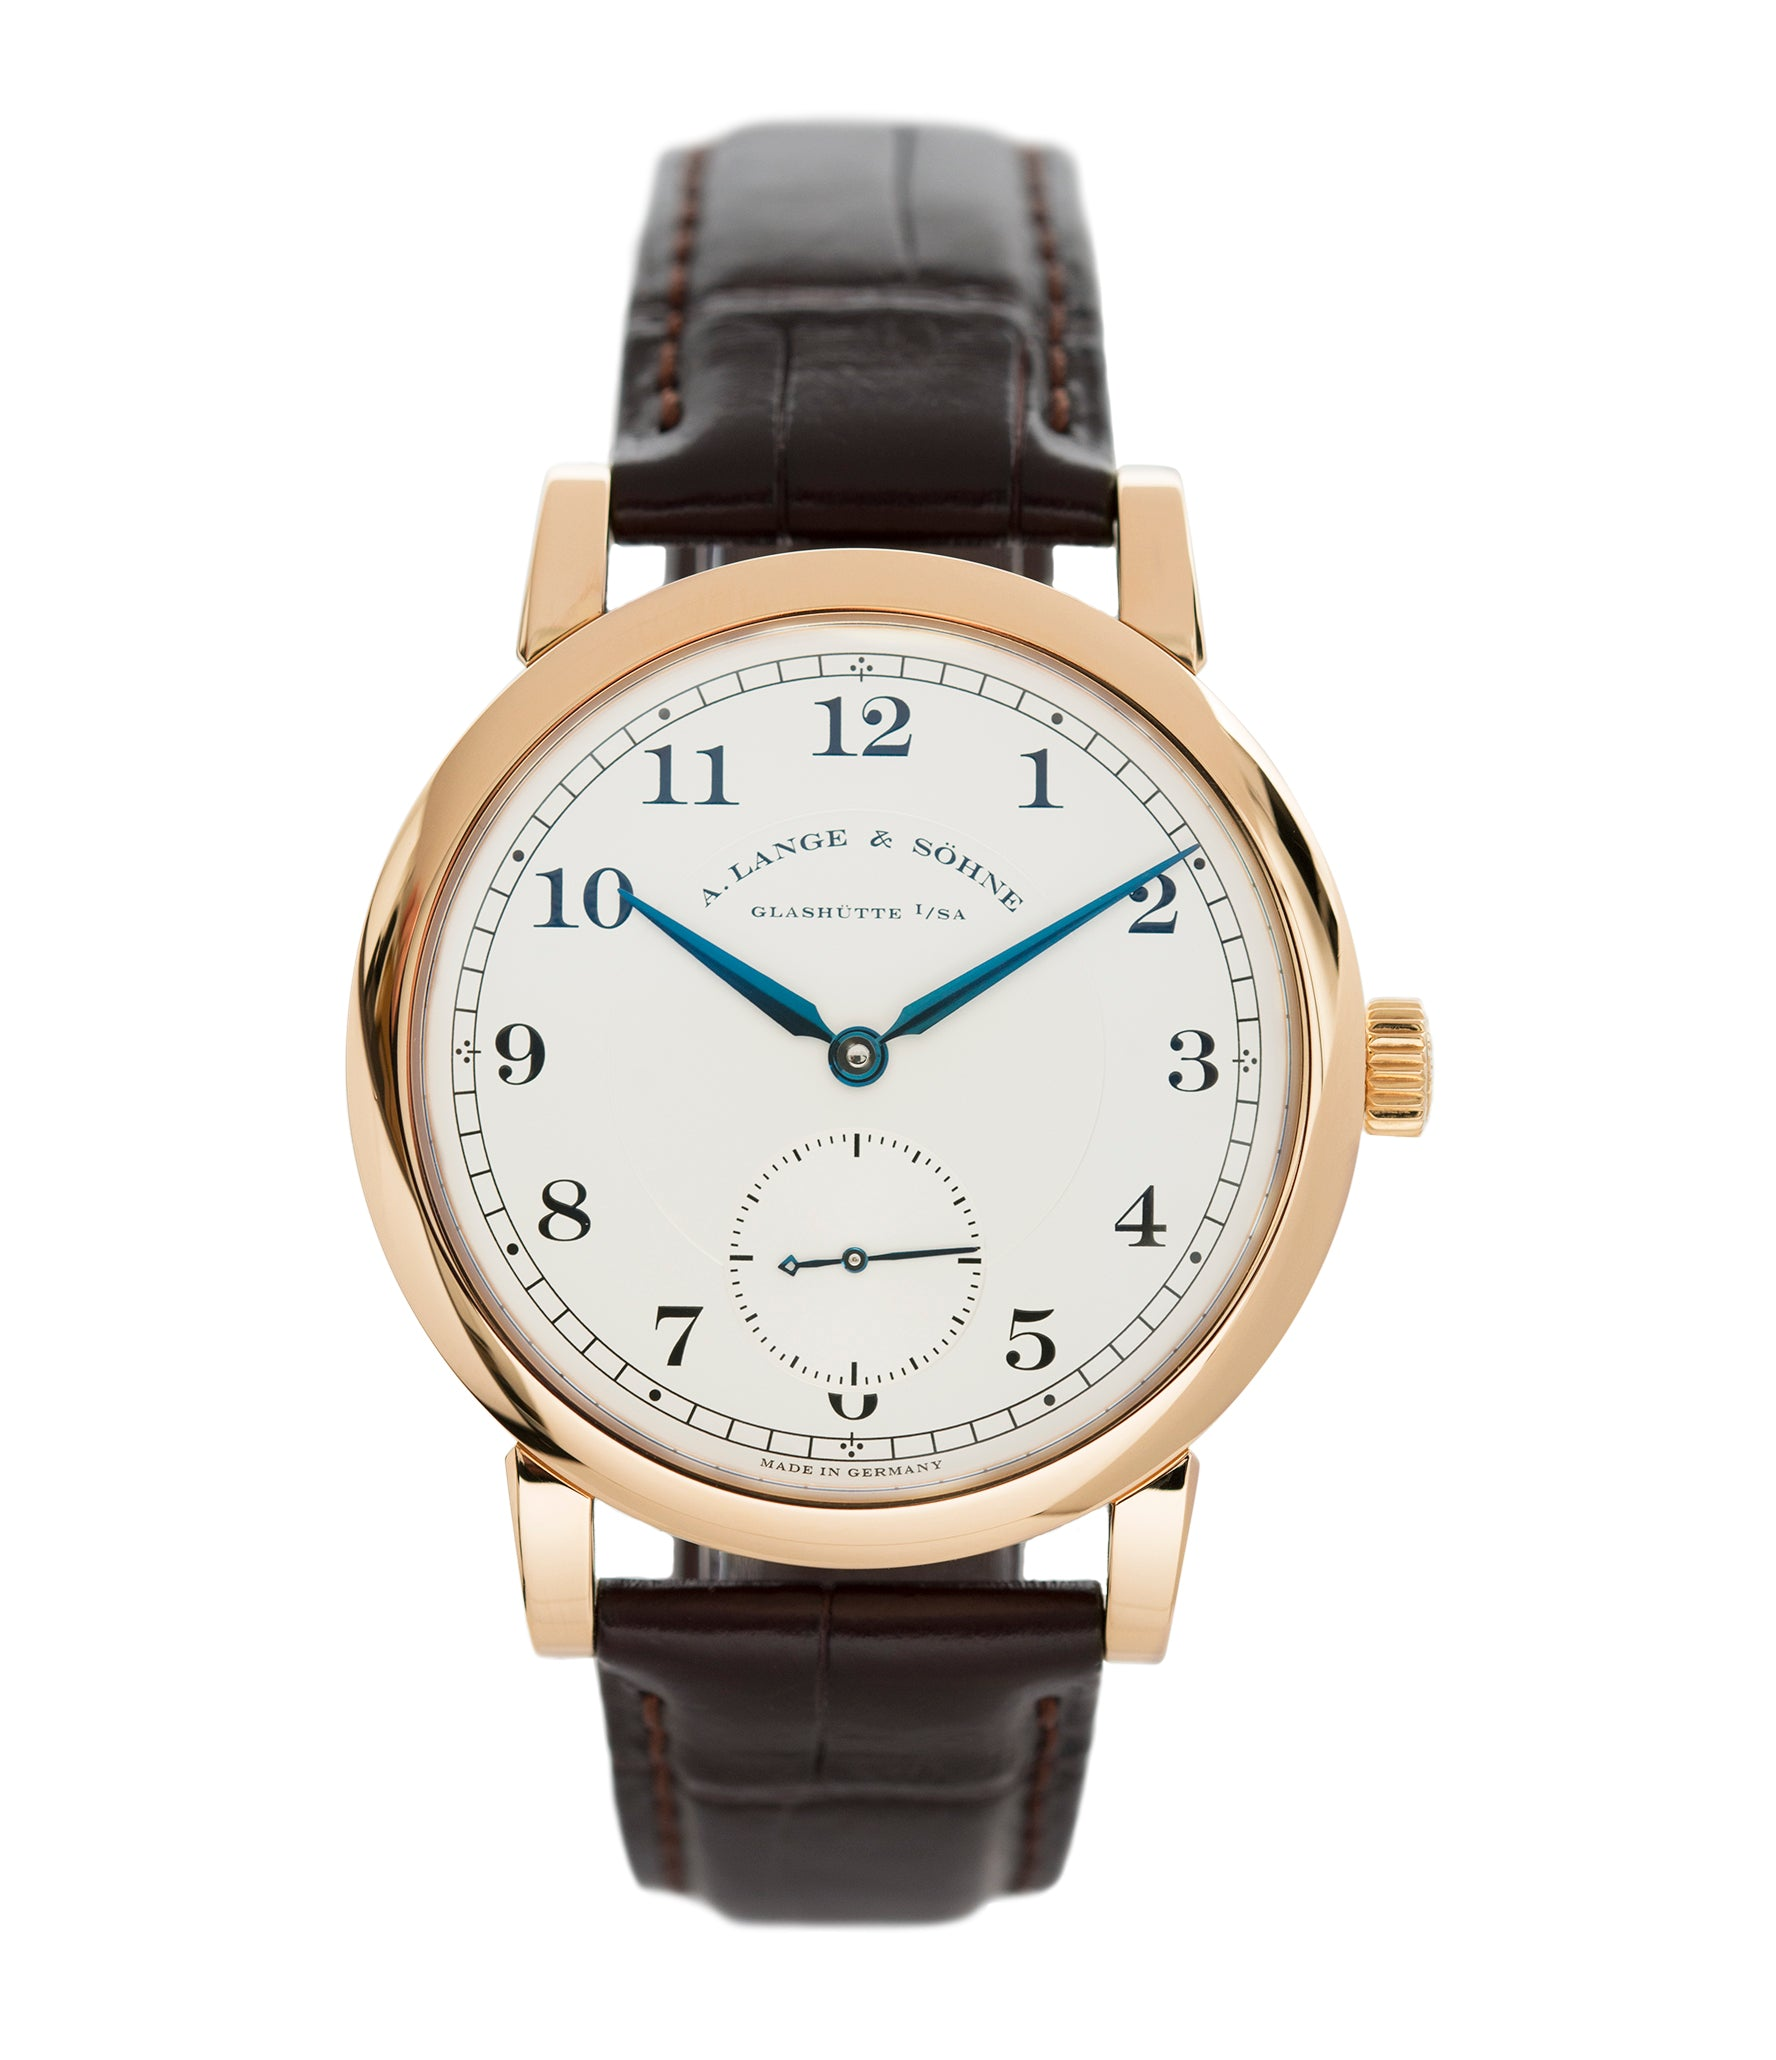 buy A. Lange & Sohne 1815 233.032 rose gold pre-owned dress watch for sale online at A Collected Man London Uk specialist of preowned luxury watches